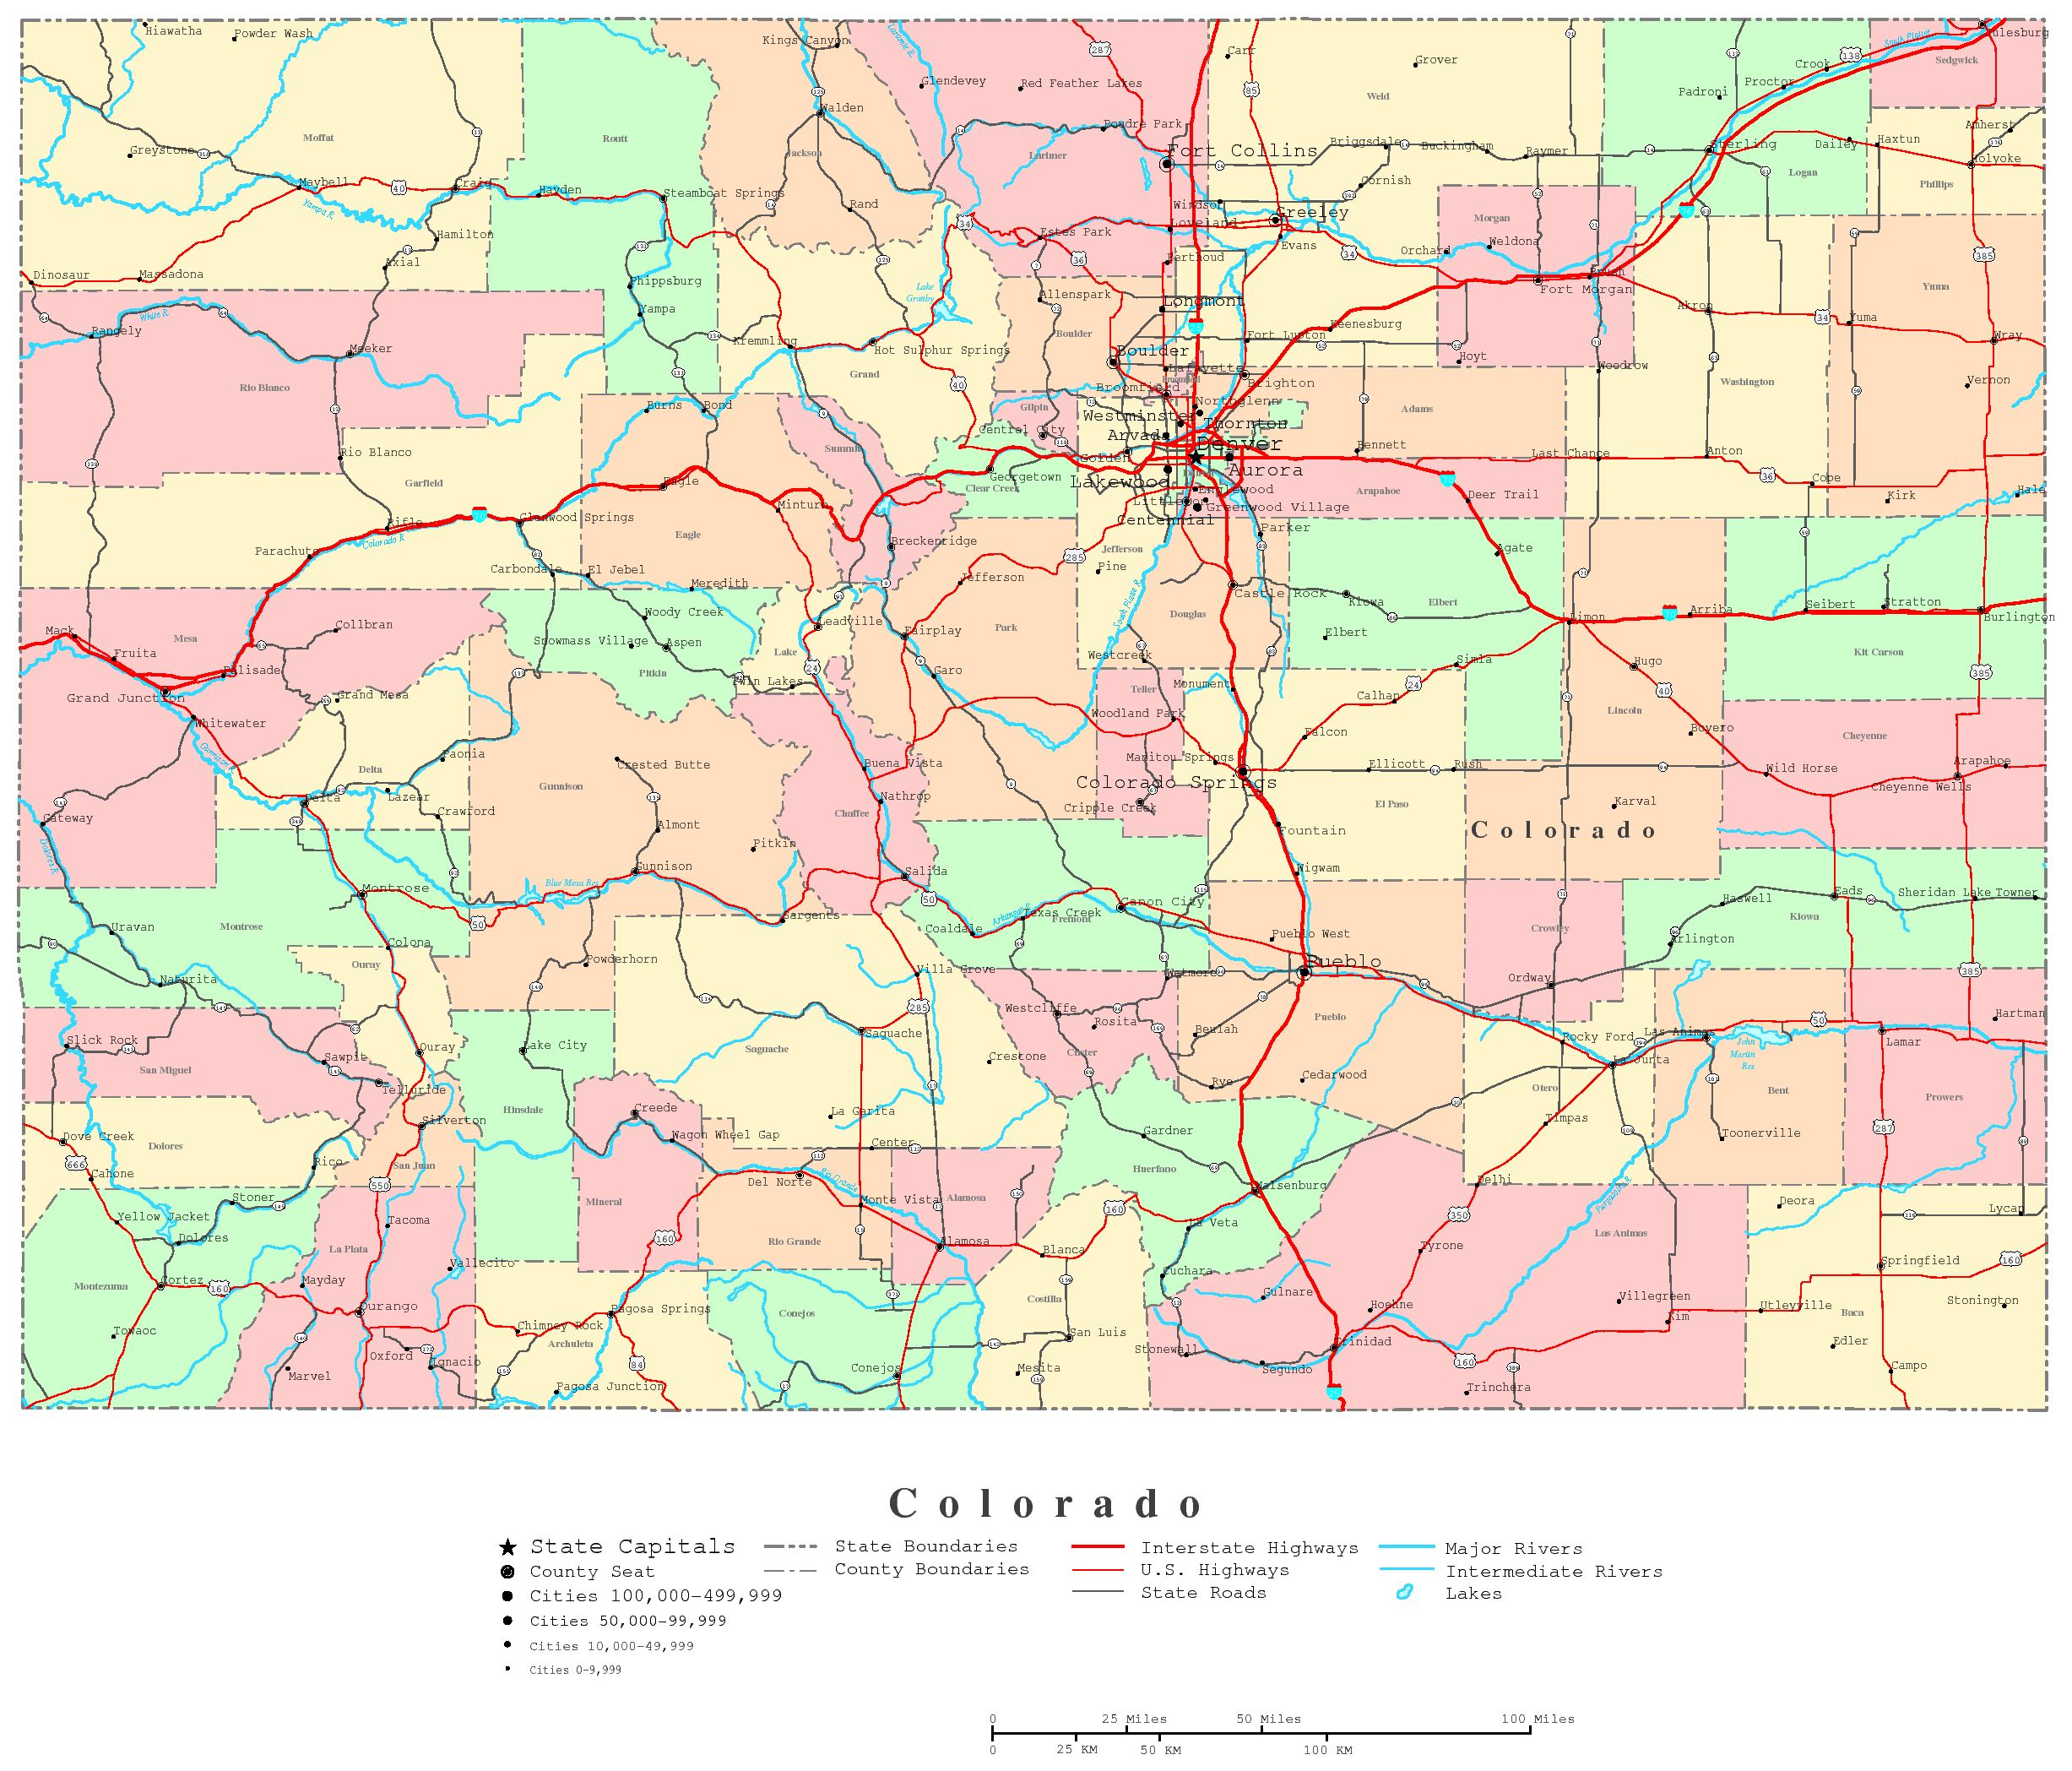 Colorado Printable Map - Colorado state map